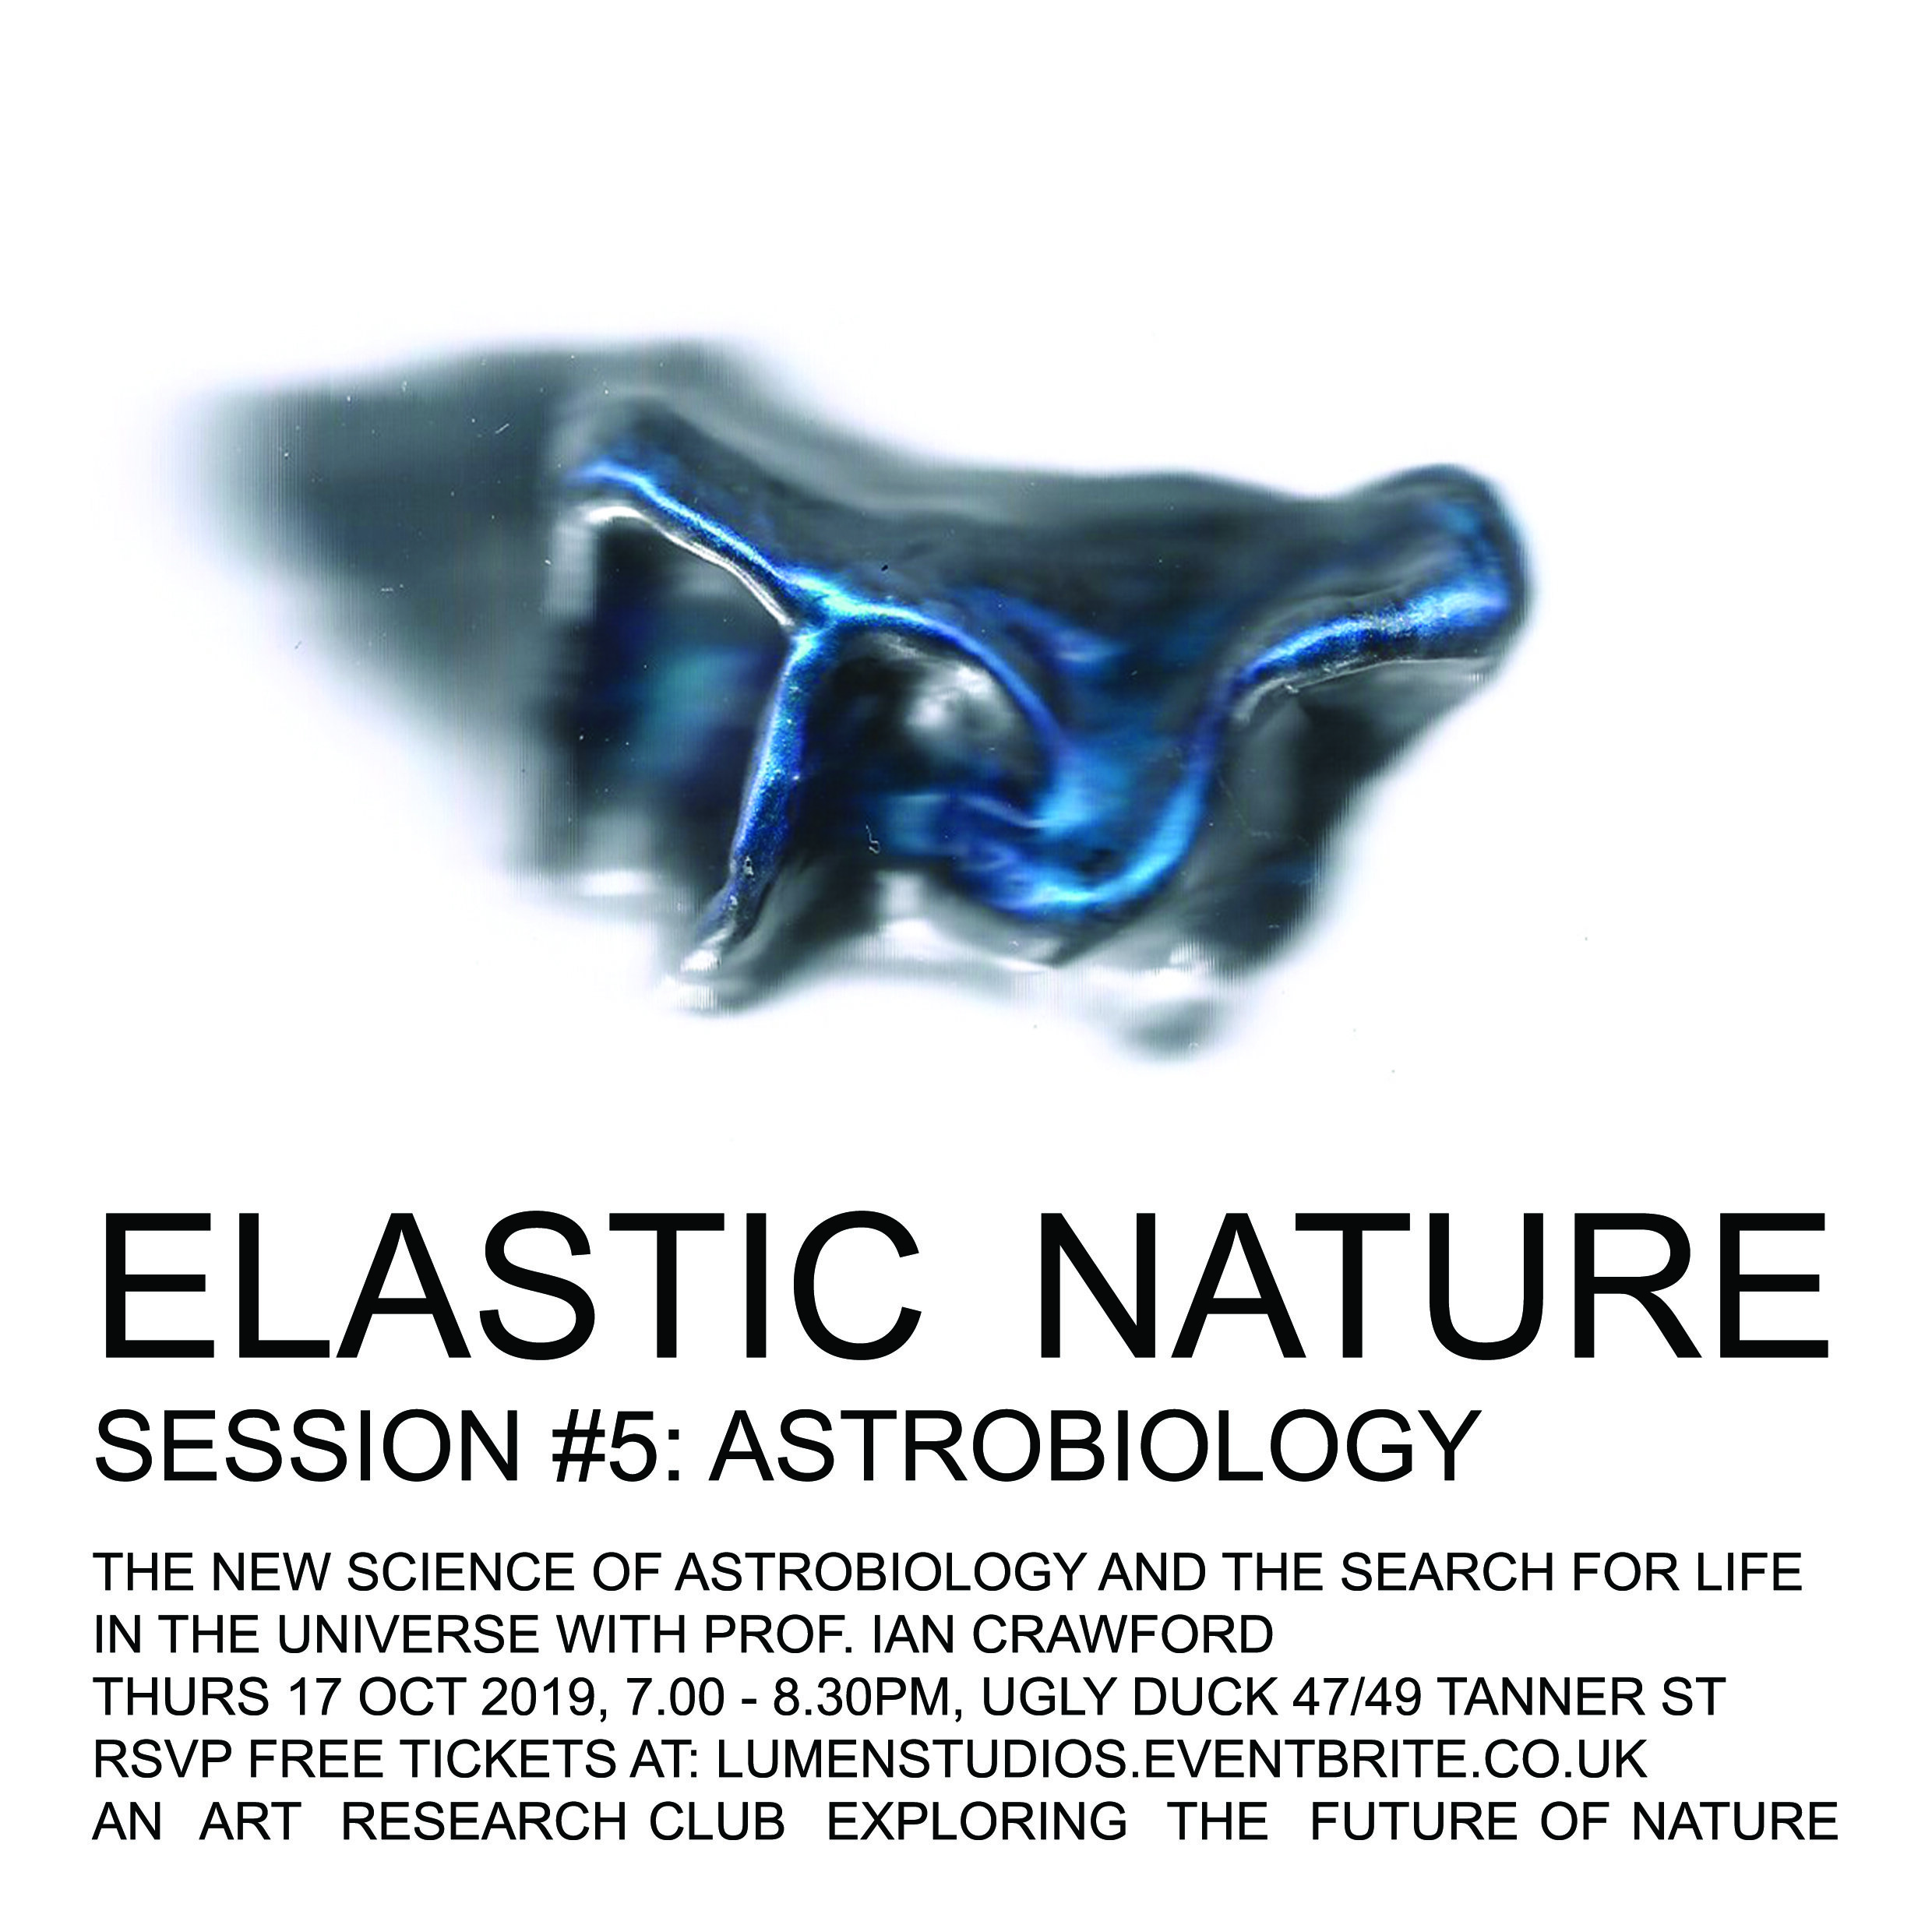 Elastic Nature_Session 5_Astrobiology.jpg